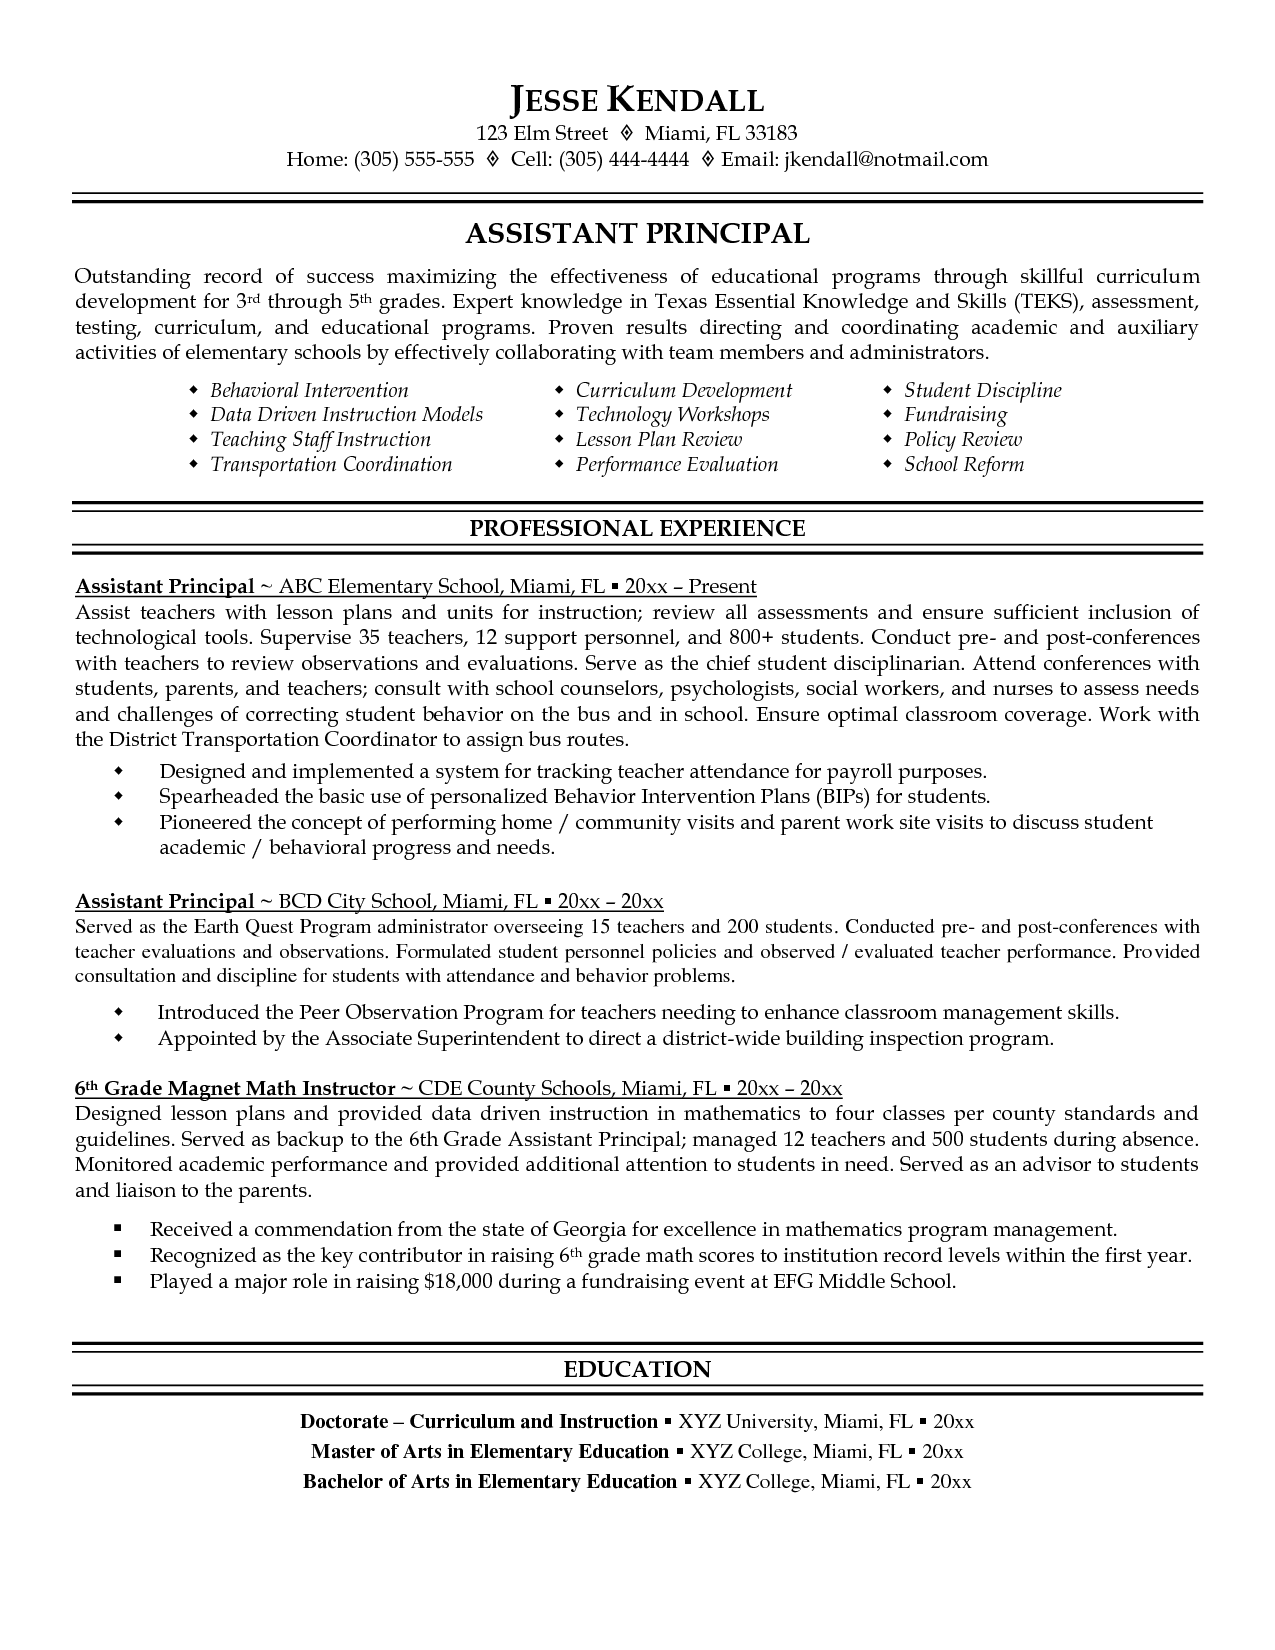 Exceptional Resume And Vice Principal | Assistant Principal Resume Sample  Resume For Assistant Principal